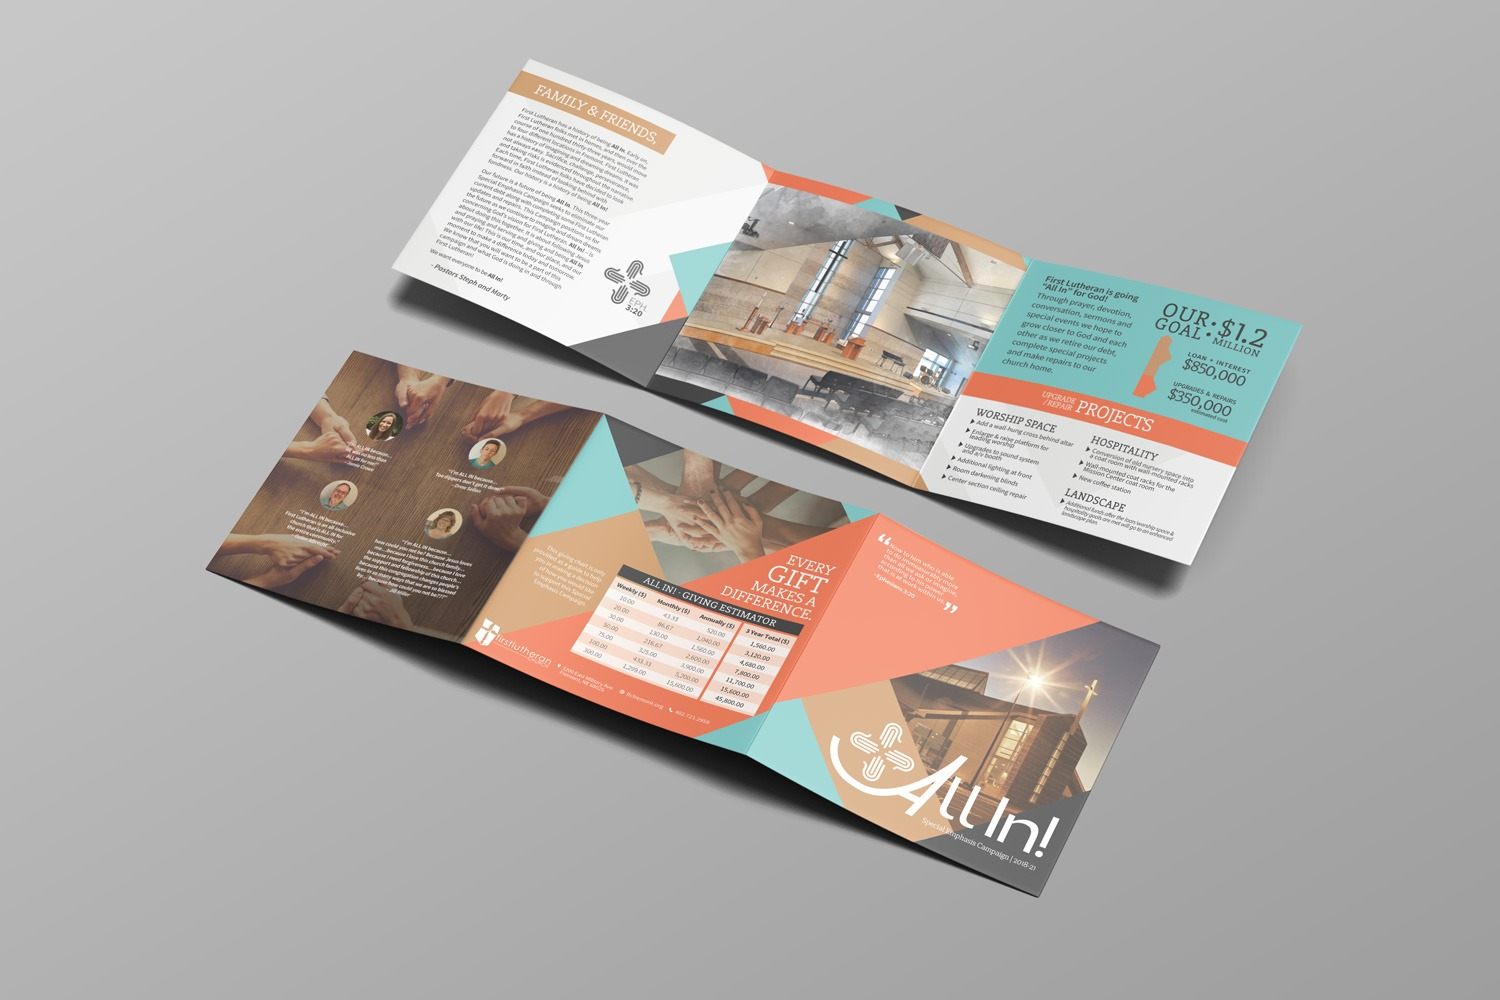 Church capital campaign brochures design case statement examples, ideas, template